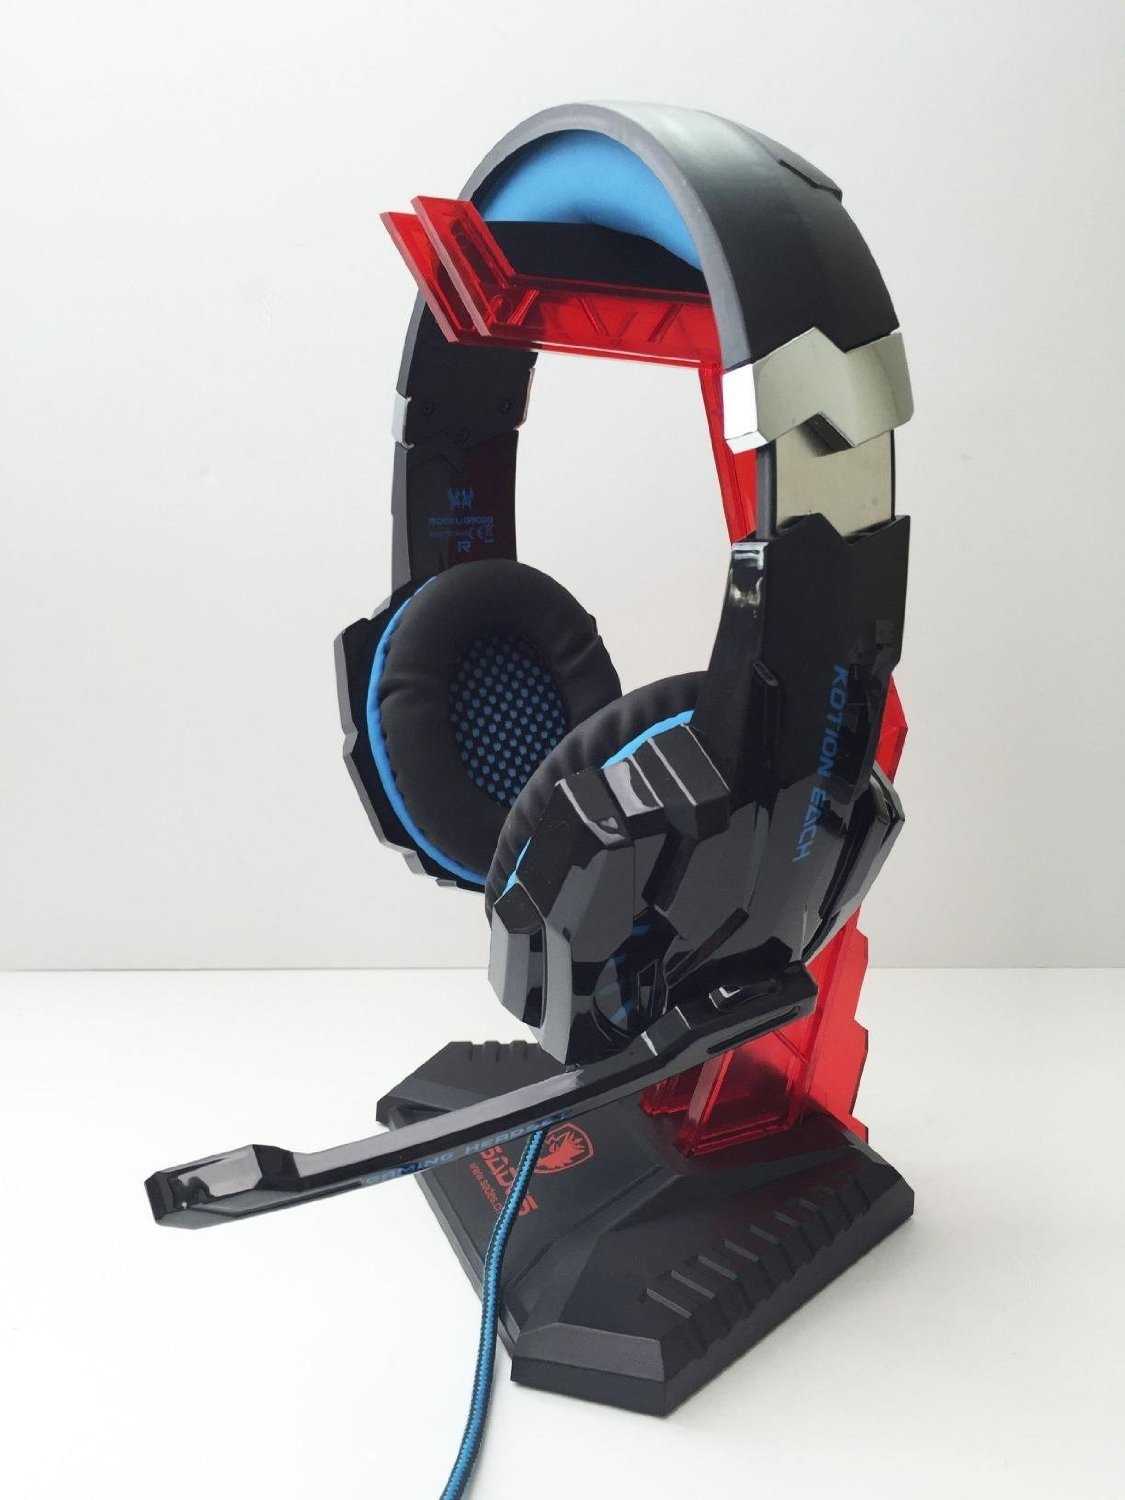 Sades S-xlyz Gaming Headset Cradle, Acrylic Headphone Bracket Stand, Head-Mounted Display Rack Headphone Hanger Holder for Gamers (Red)